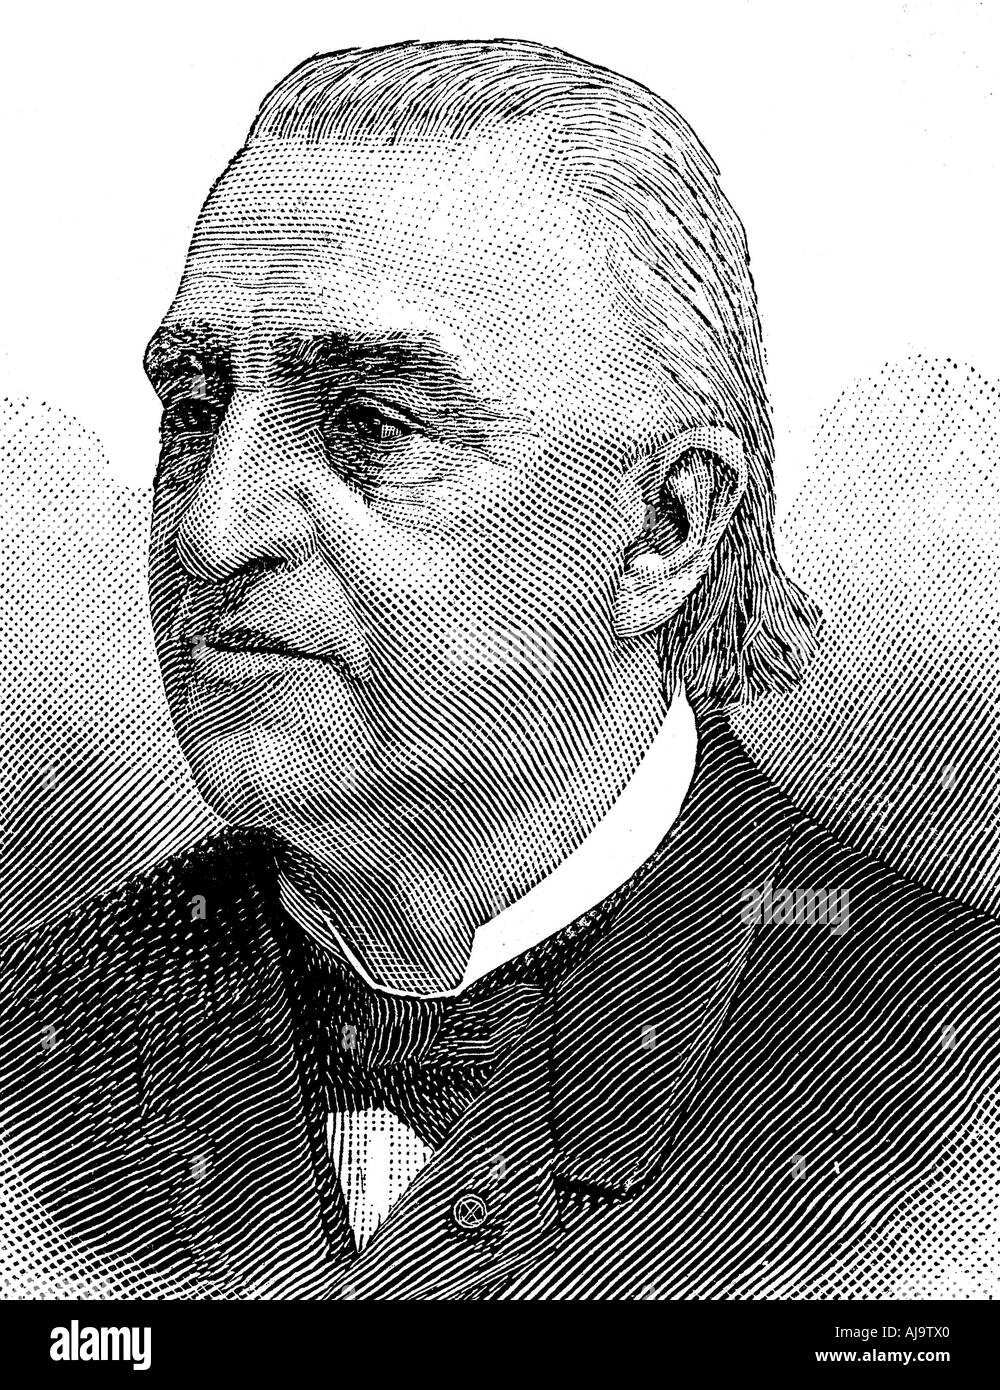 Jean Martin Charcot, French neurologist and pathologist, 1893. Artist: Anon - Stock Image